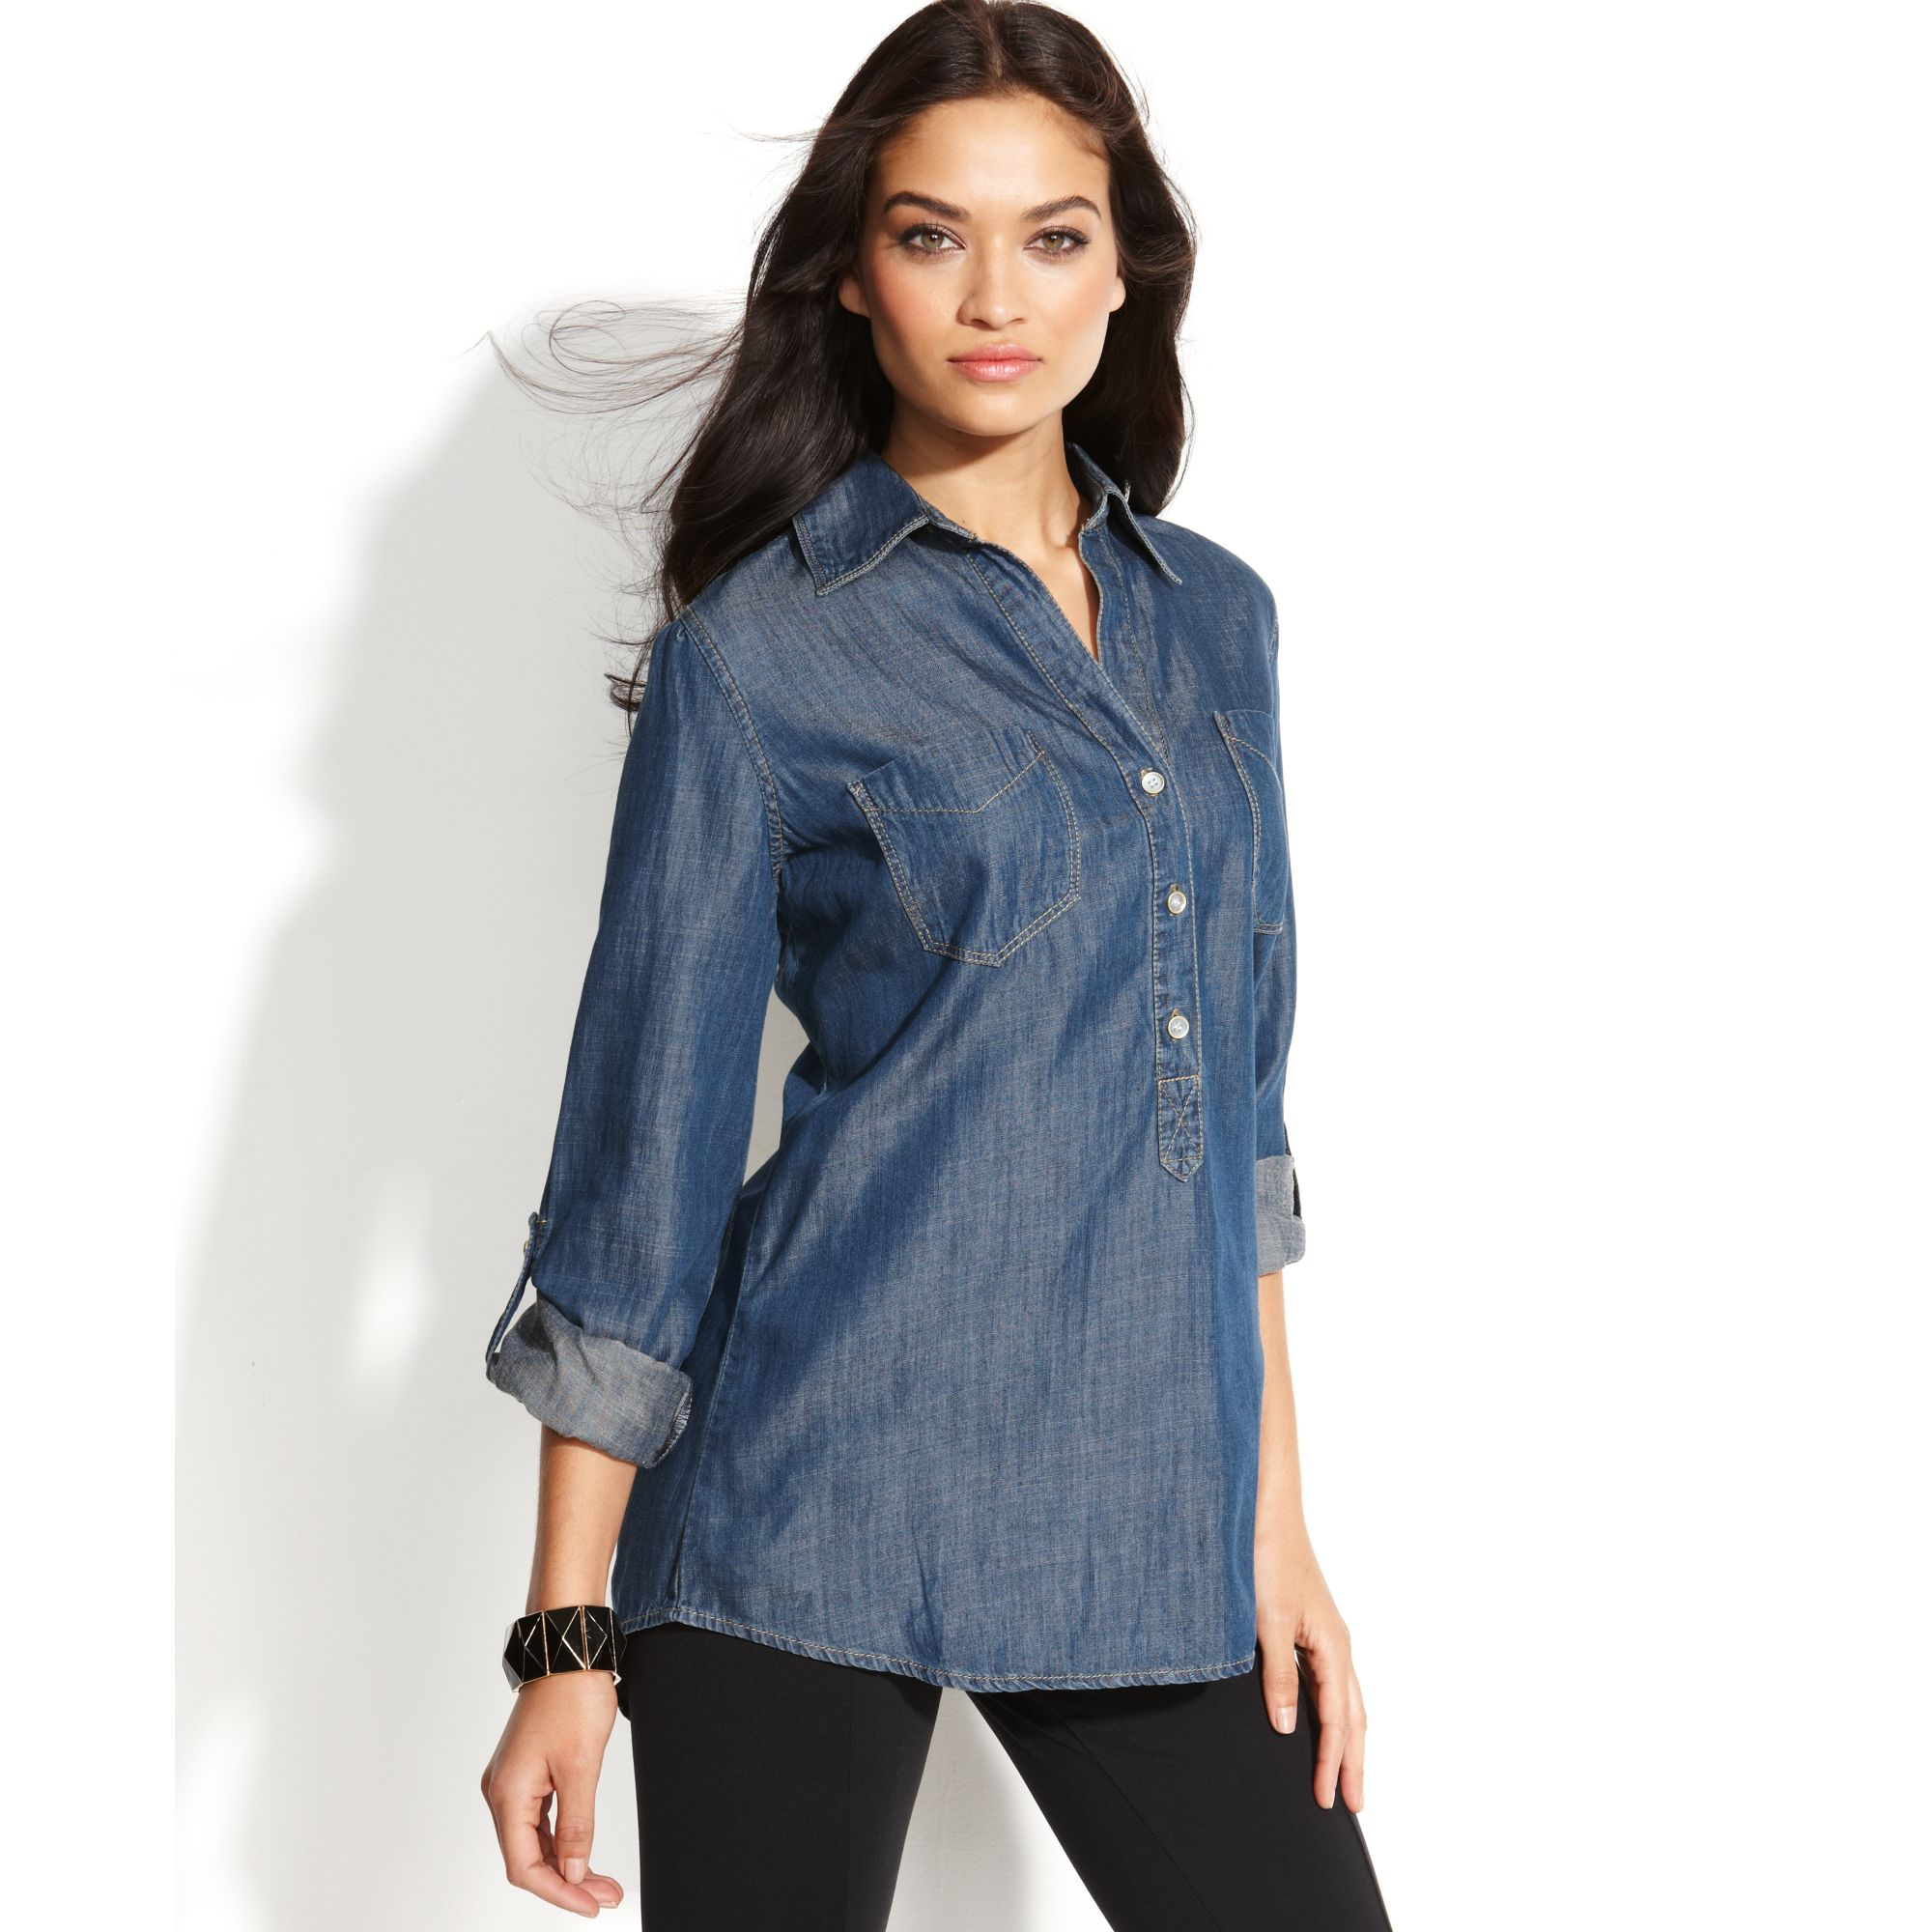 Crafted in sleek chambray fabric, this popover is the perfect piece for any charming collection. It's designed as a tunic style, making it instantly flow perfectly .